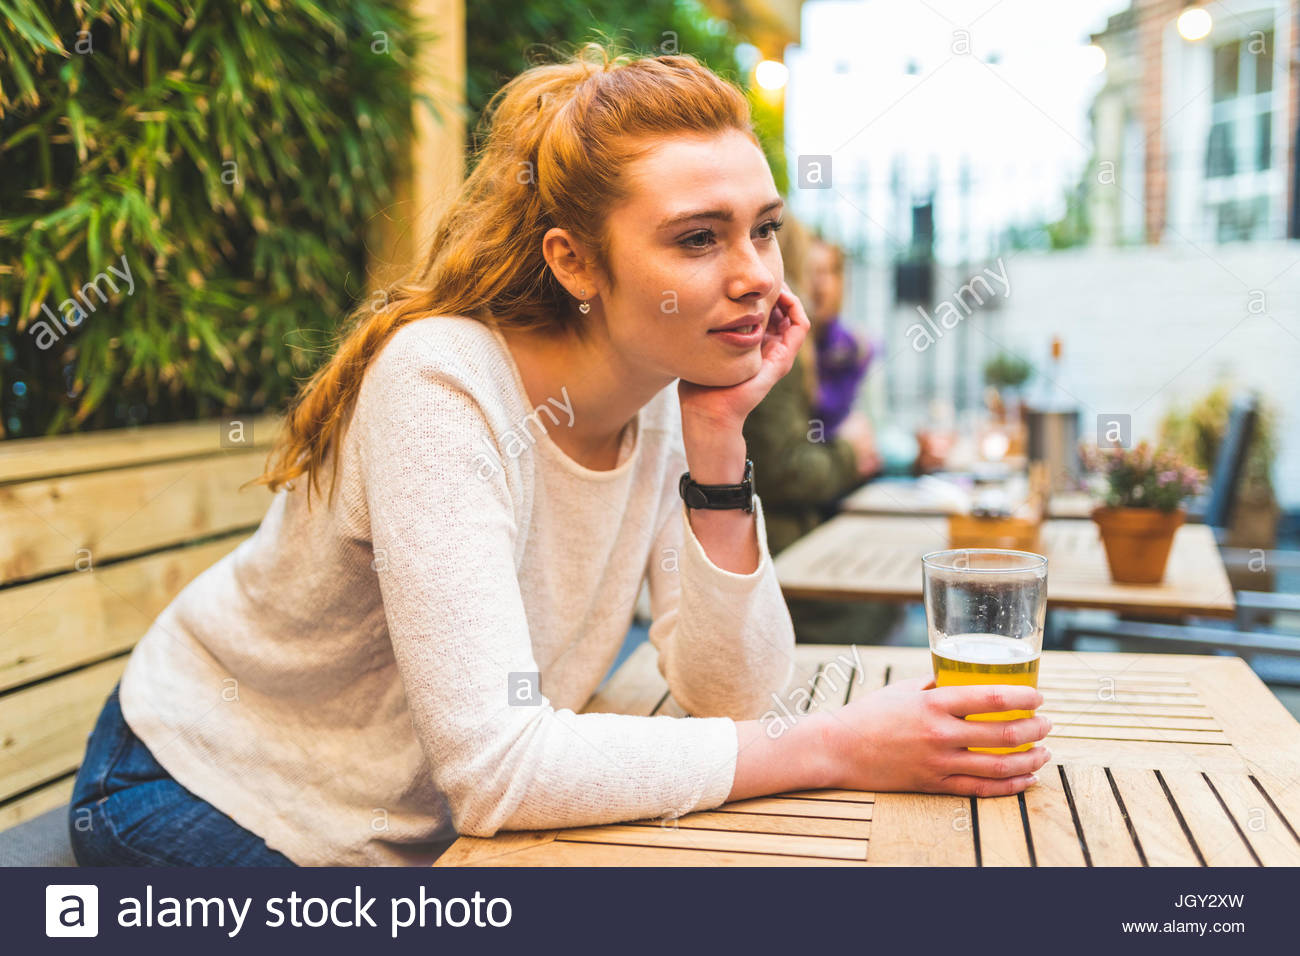 Woman sitting in pub garden, holding pint of beer, bored expression - Stock Image